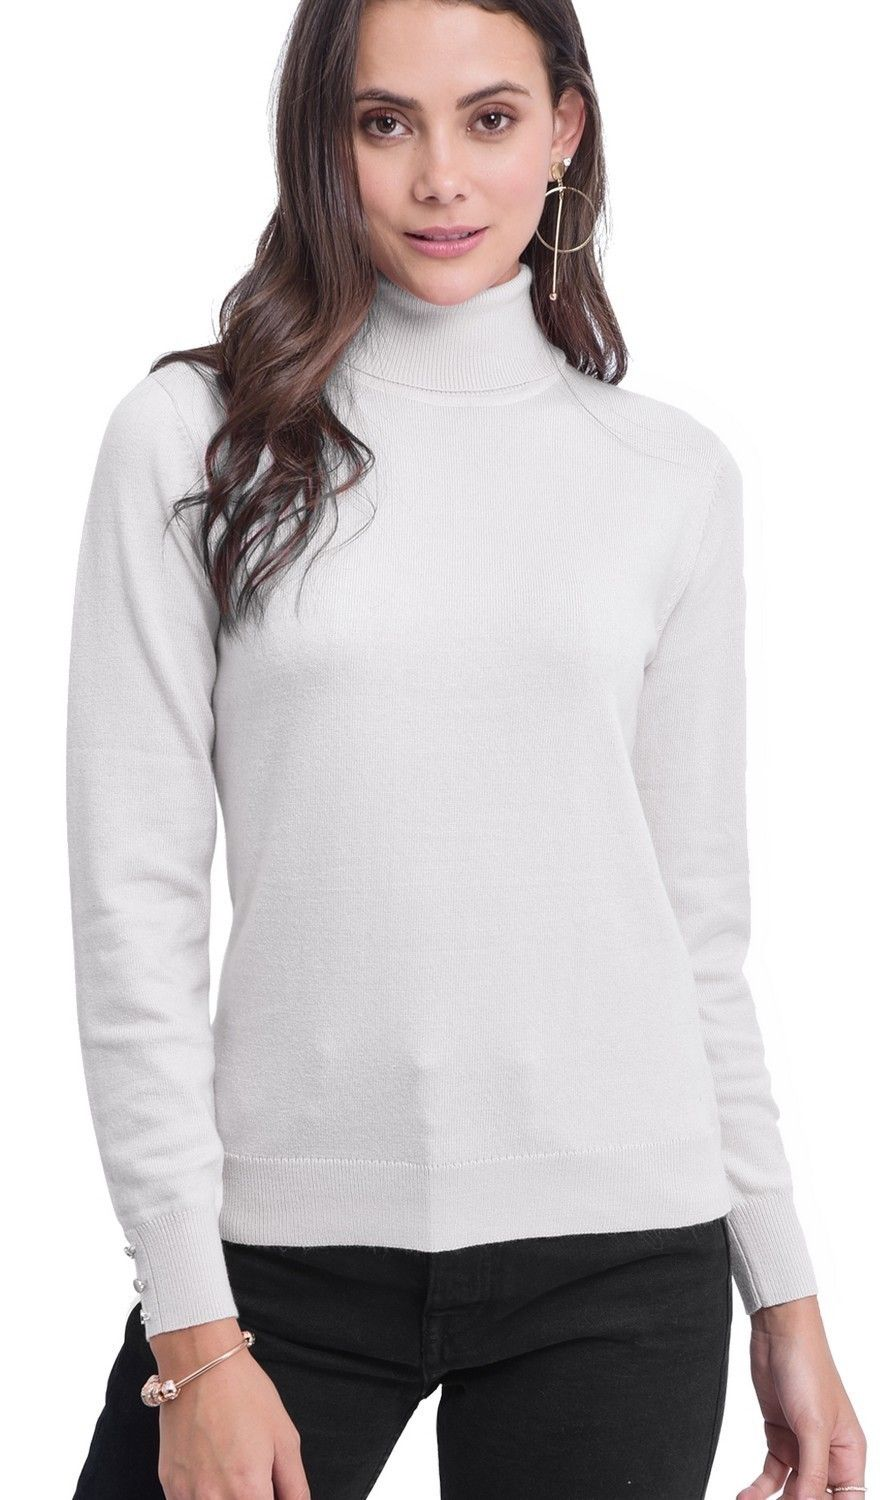 C&JO Turtleneck Sweater with Buttoned Sleeves in Natural